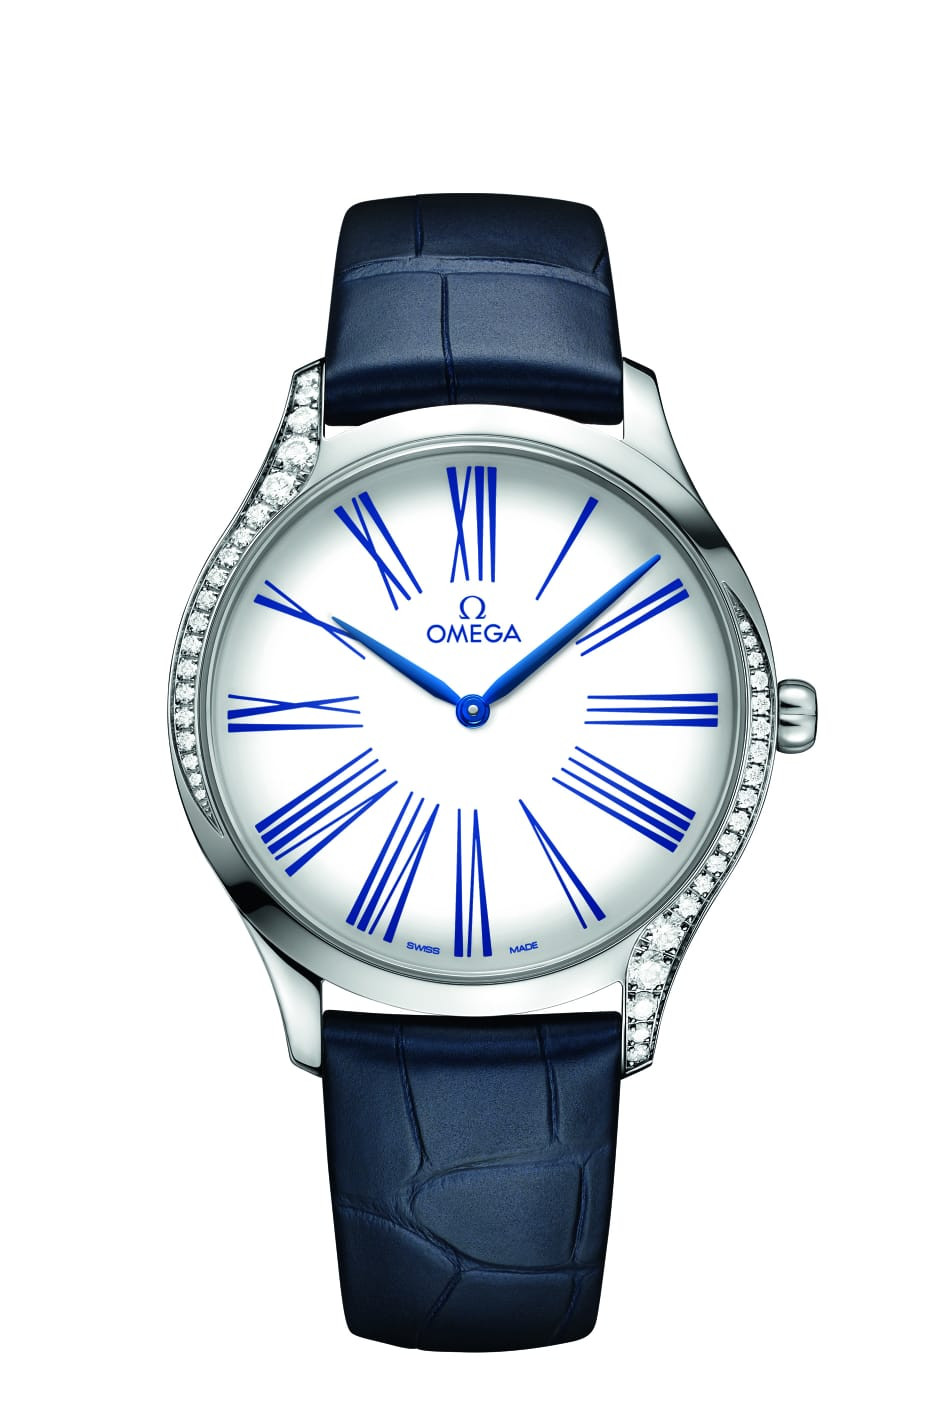 OMEGA, The De Ville Trésor Collection . Image Copyright: OMEGA